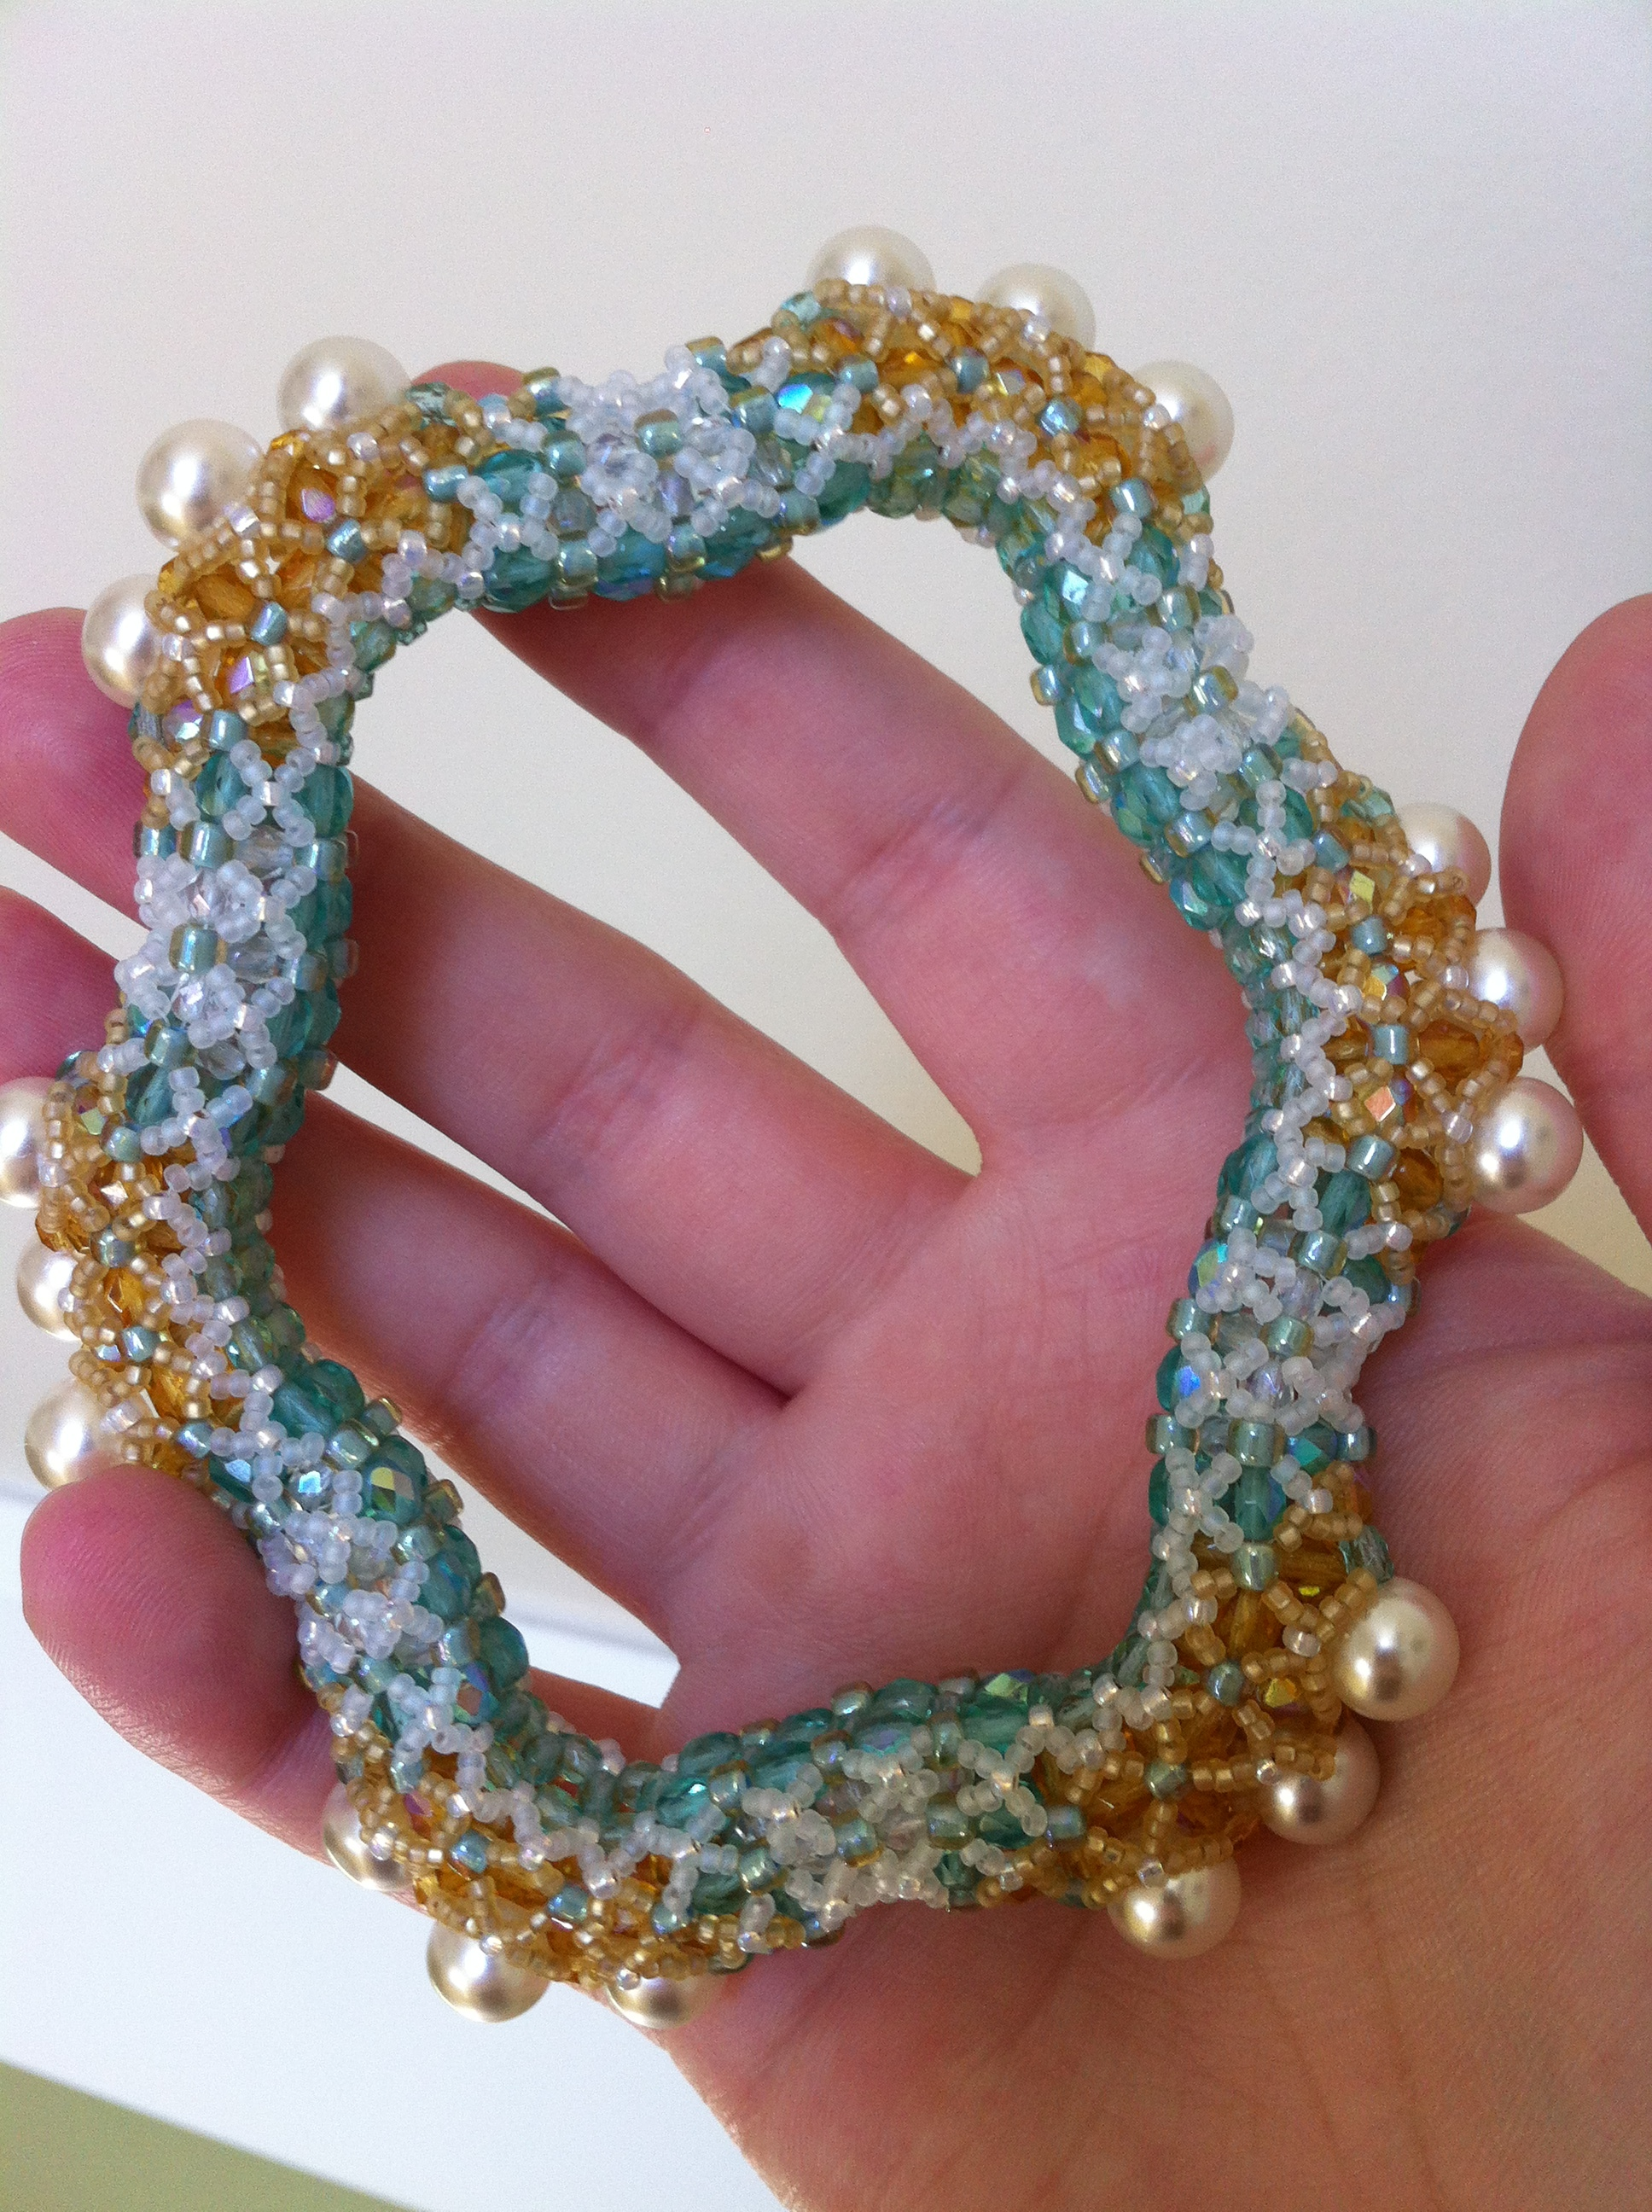 A turquose, white, and gold bangle with pearl accents made of glass, crystal and seed beads. It rests in the palm of a pinkish hand.